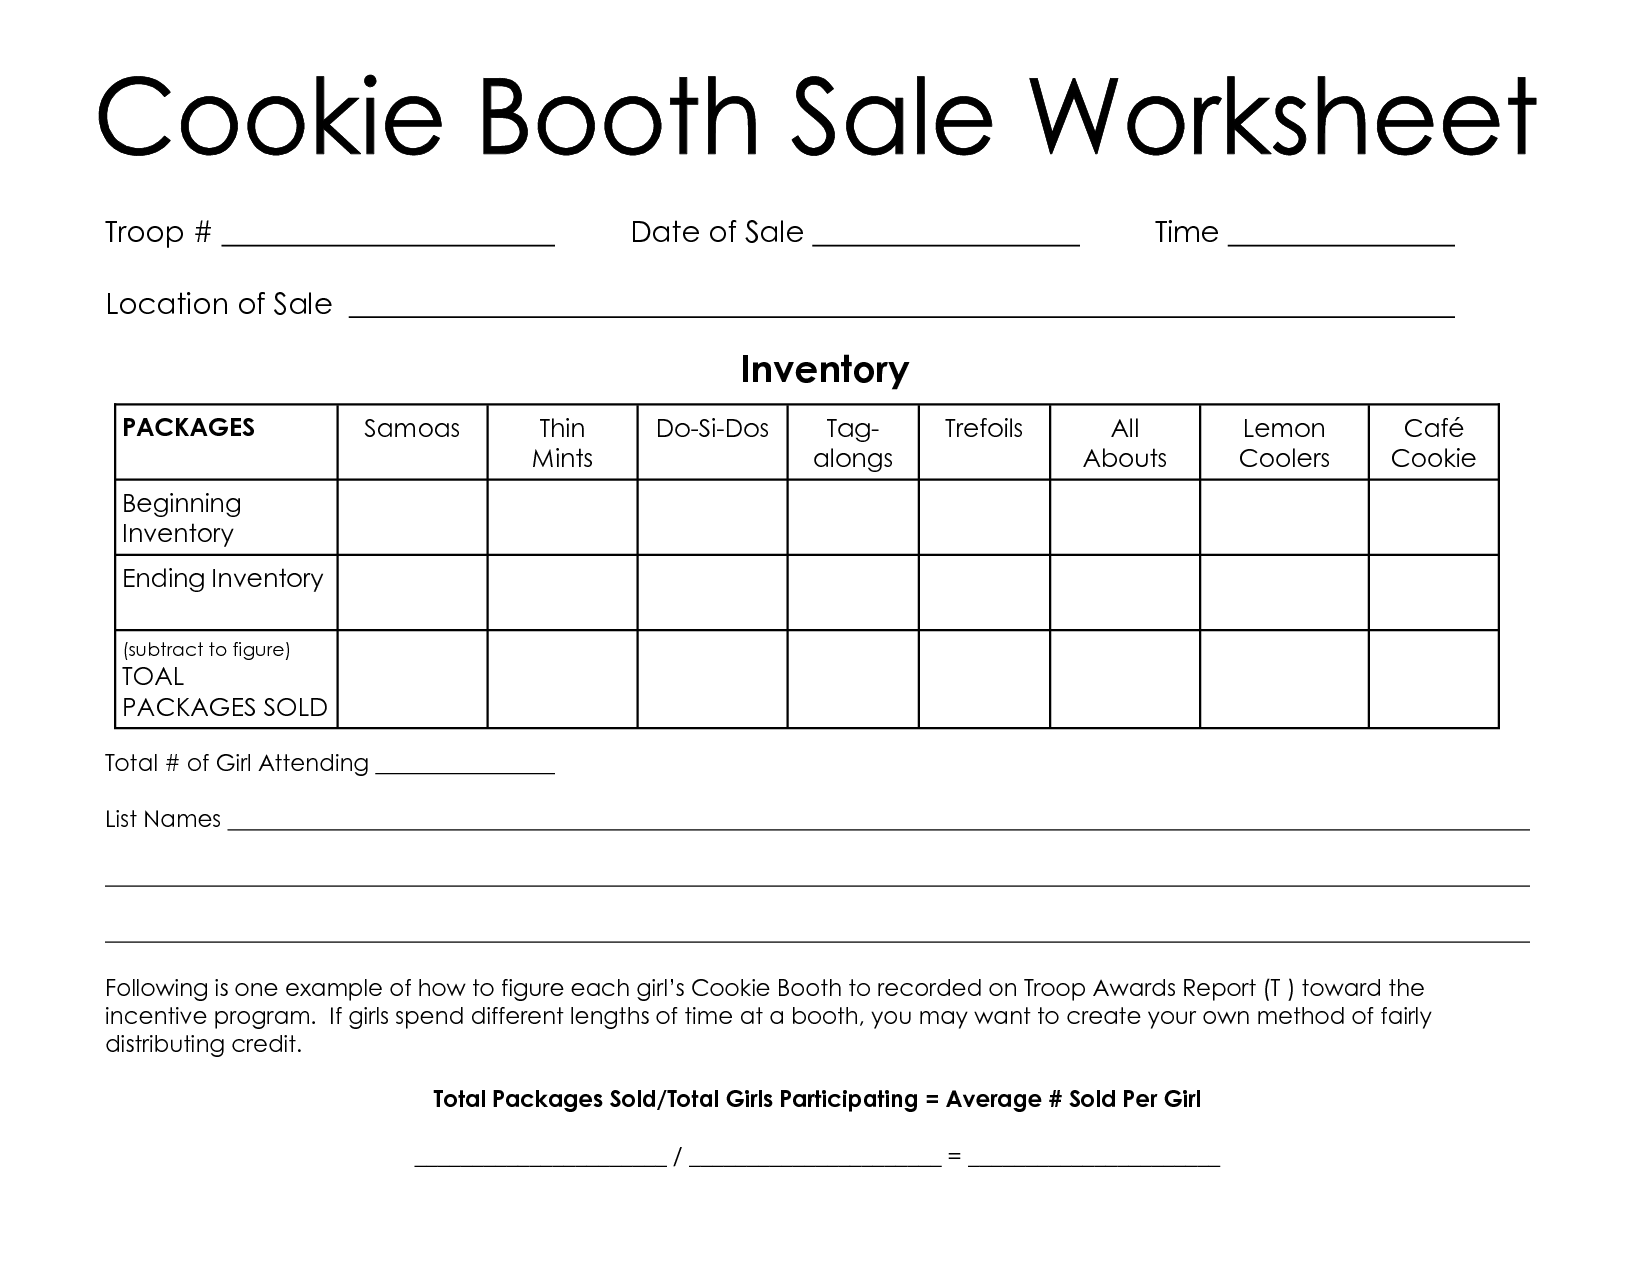 Girl Scout Cookie Booth Worksheet Cookie Booth Sale